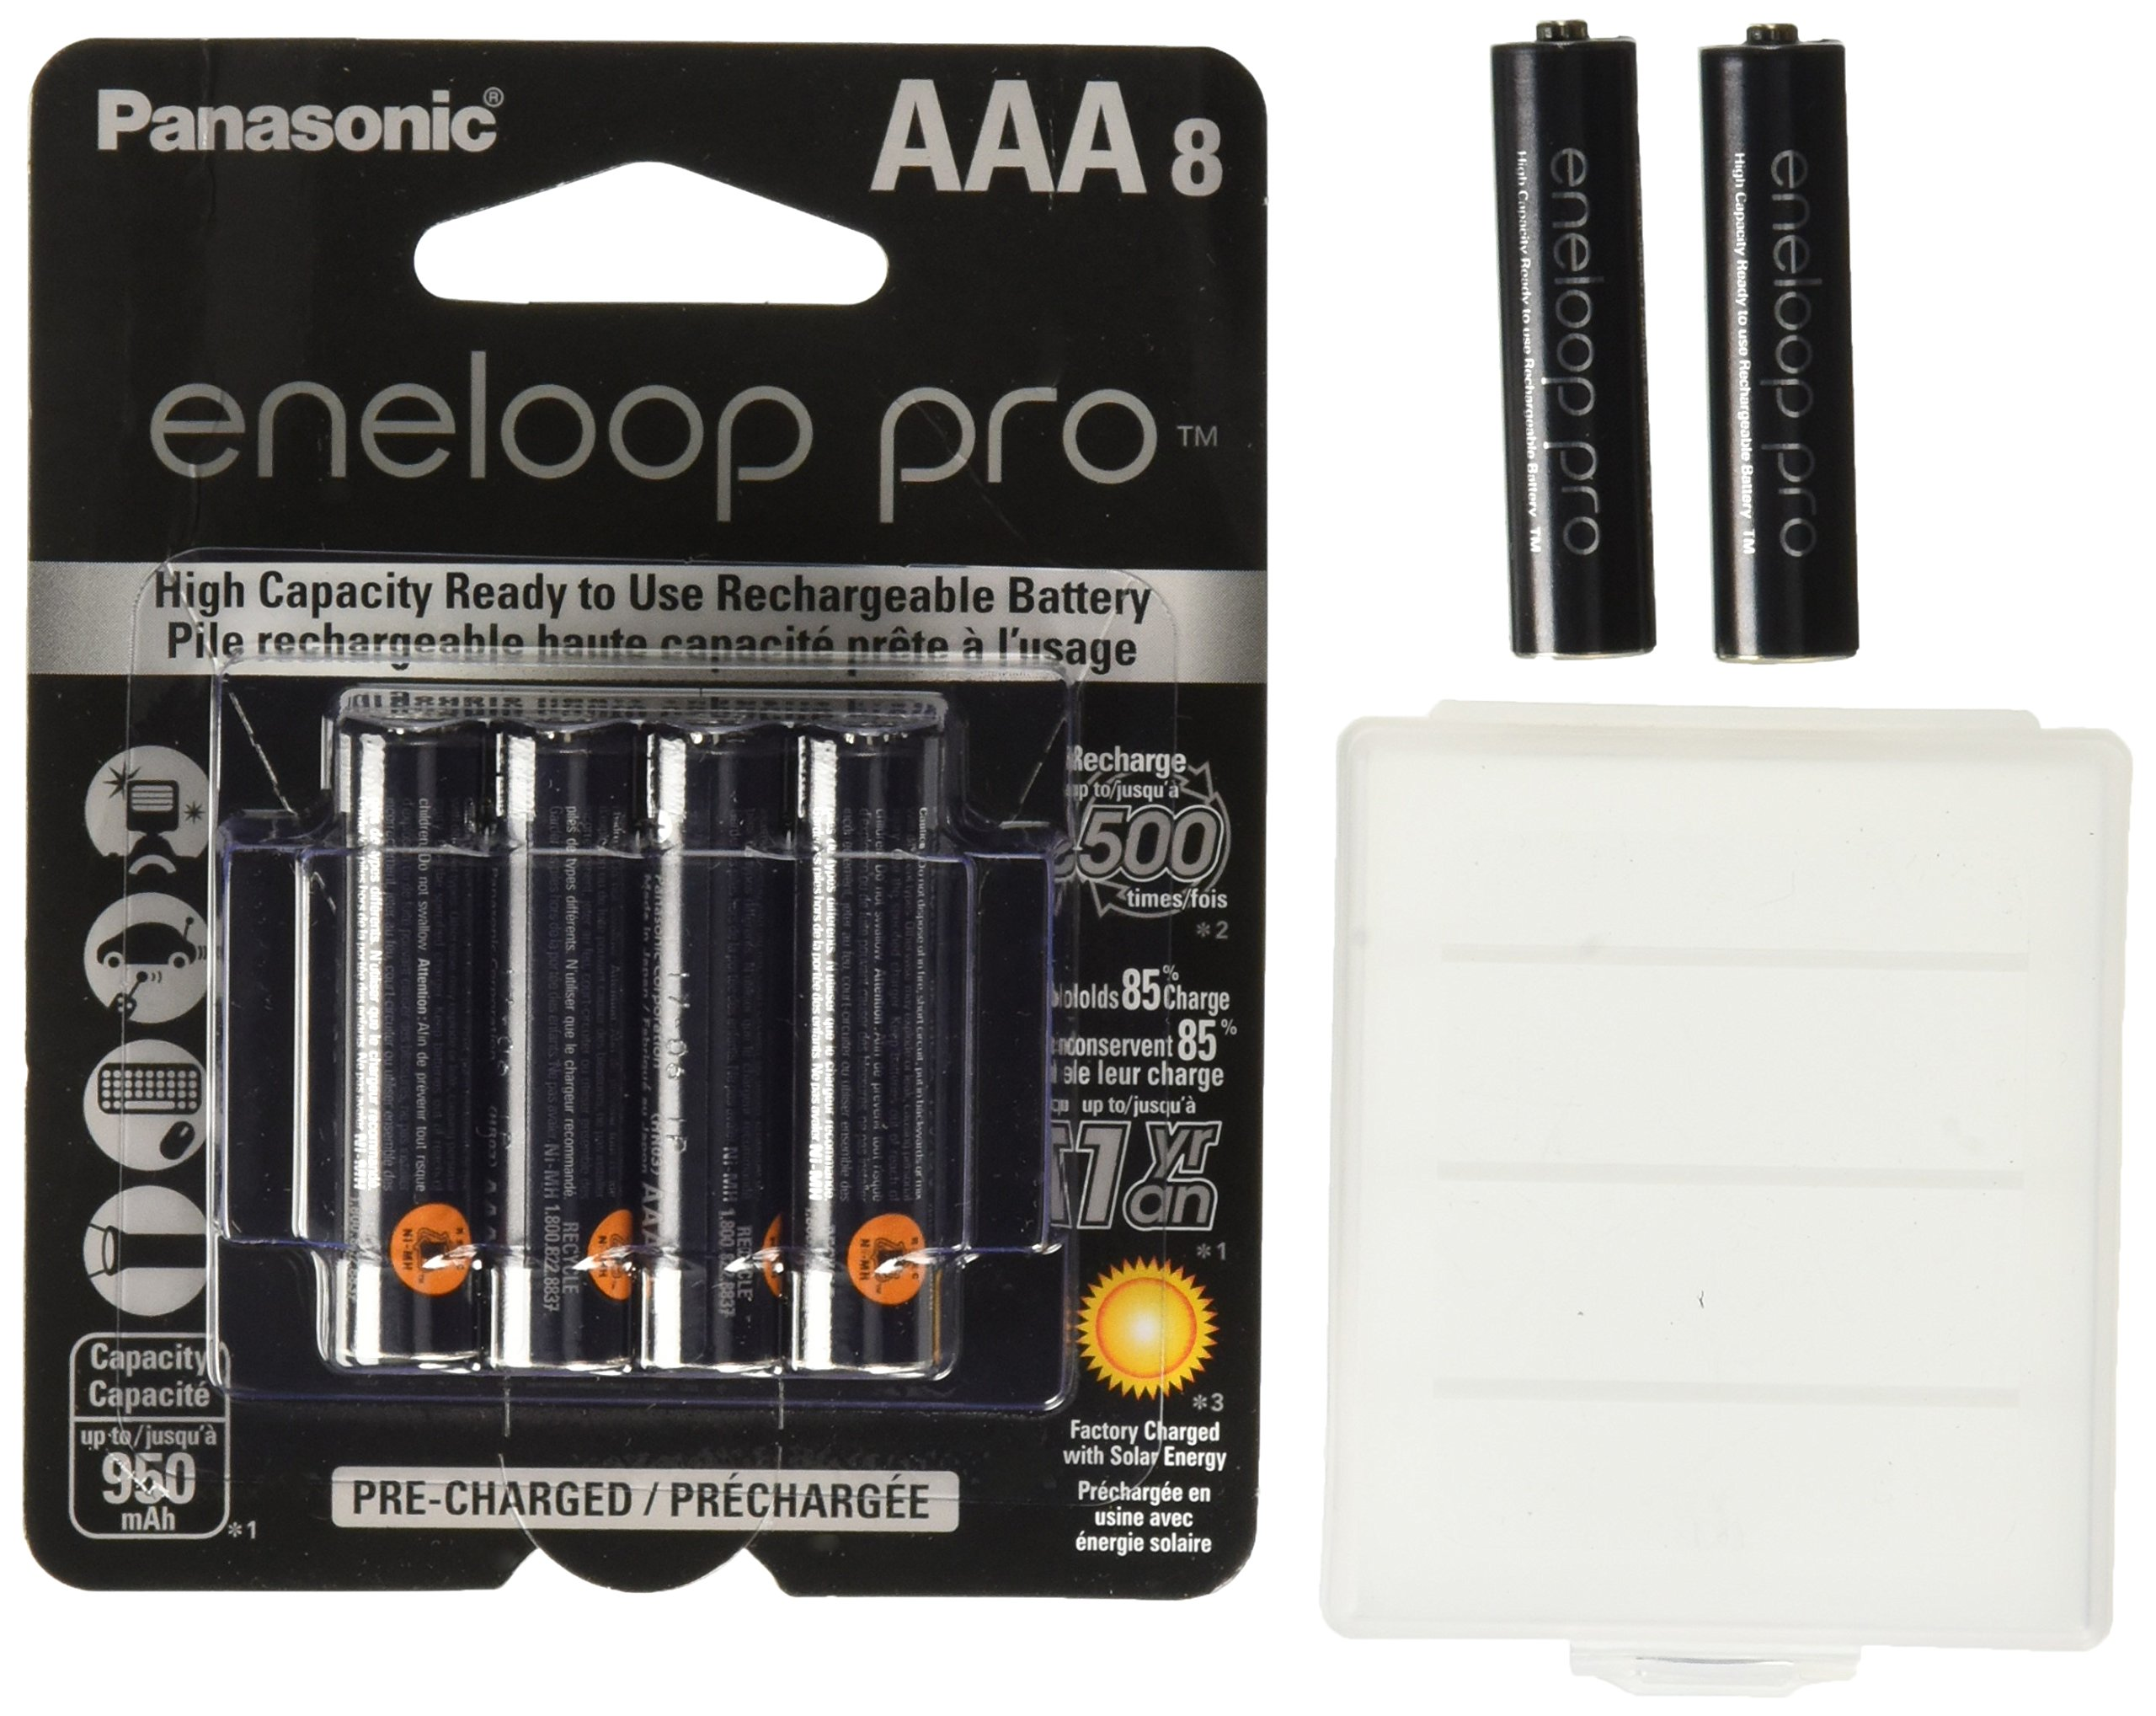 Eneloop Pro AAA 950mAh Min 900mAh High Capacity Ni-MH Pre-Charged Rechargeable Battery with Holder Pack of 10 by eneloop